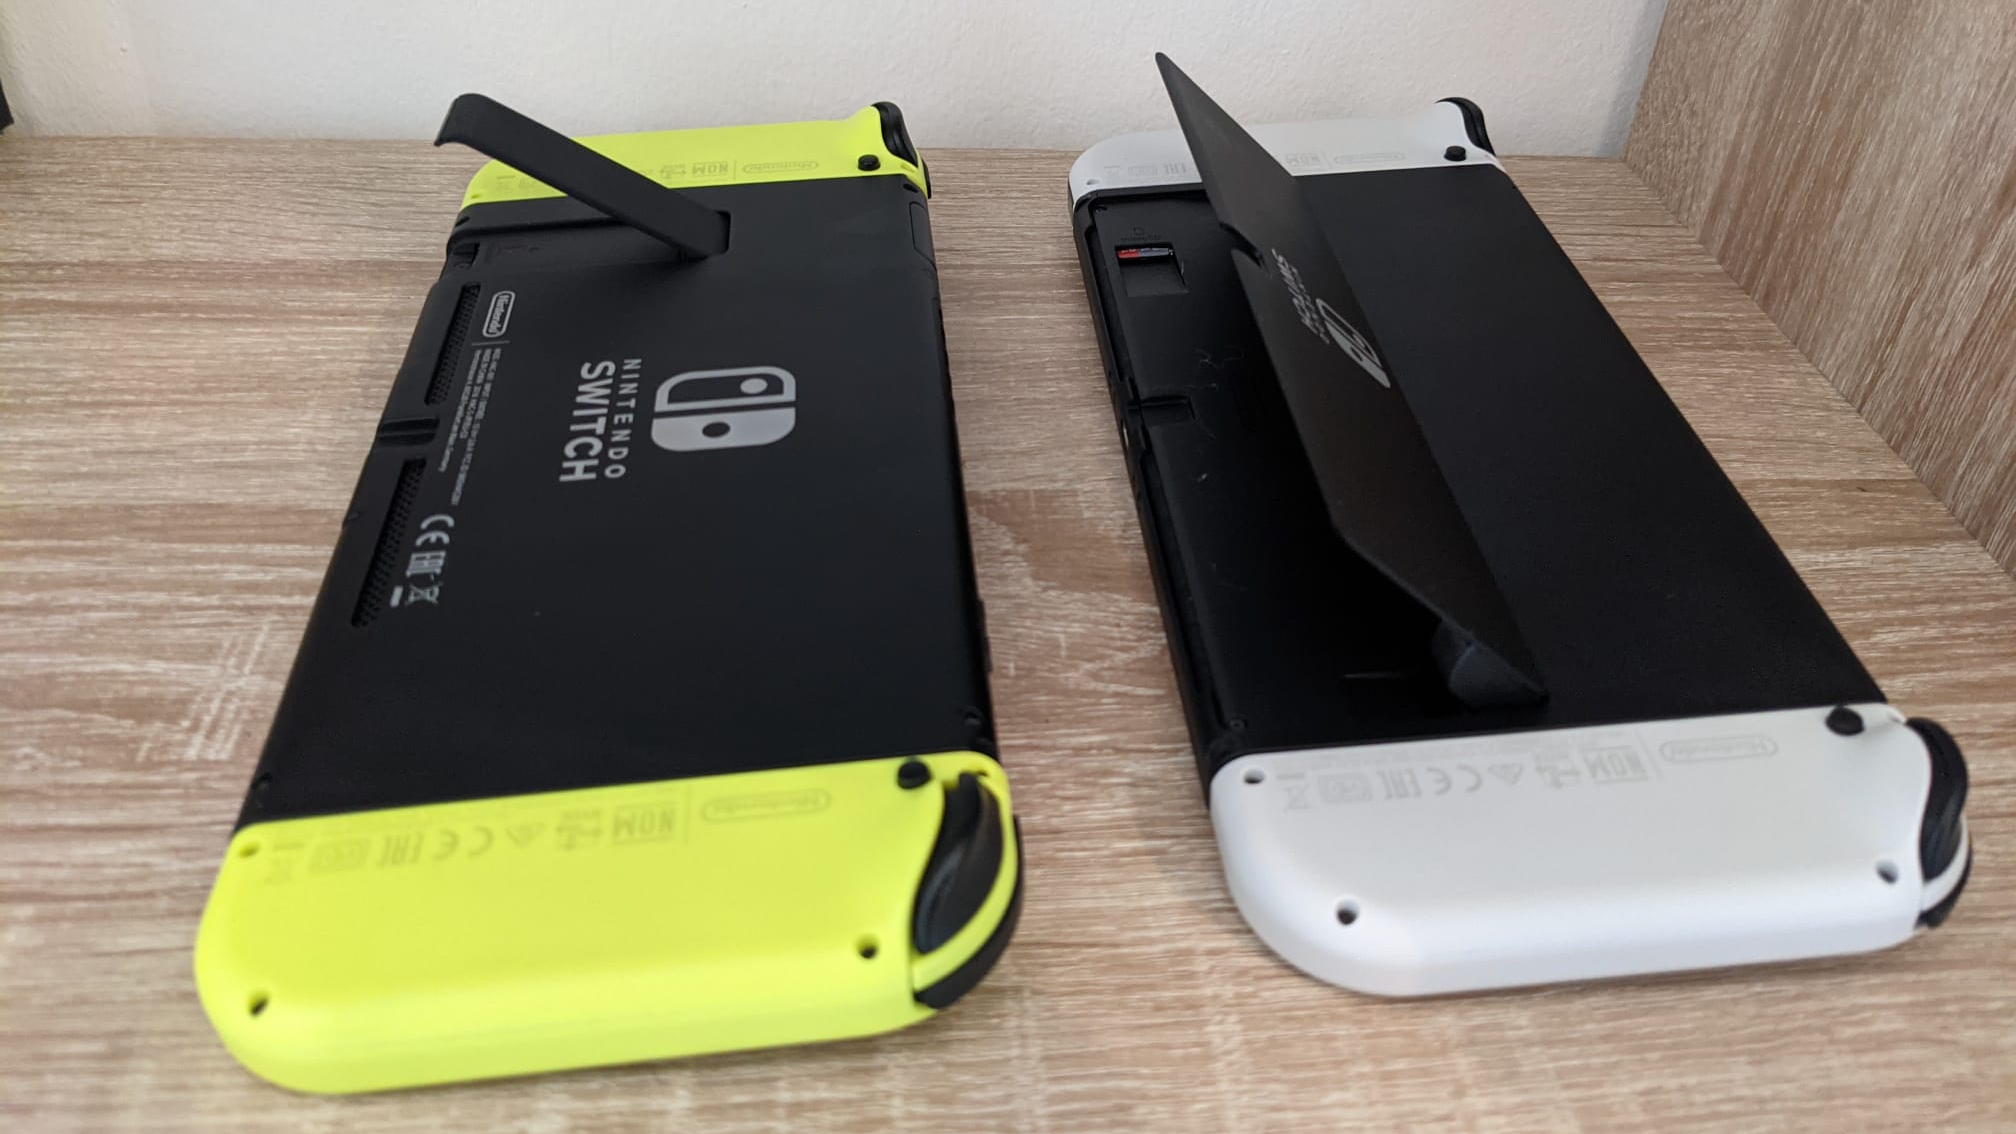 Nintendo Switch OLED compared to old Switch kickstand